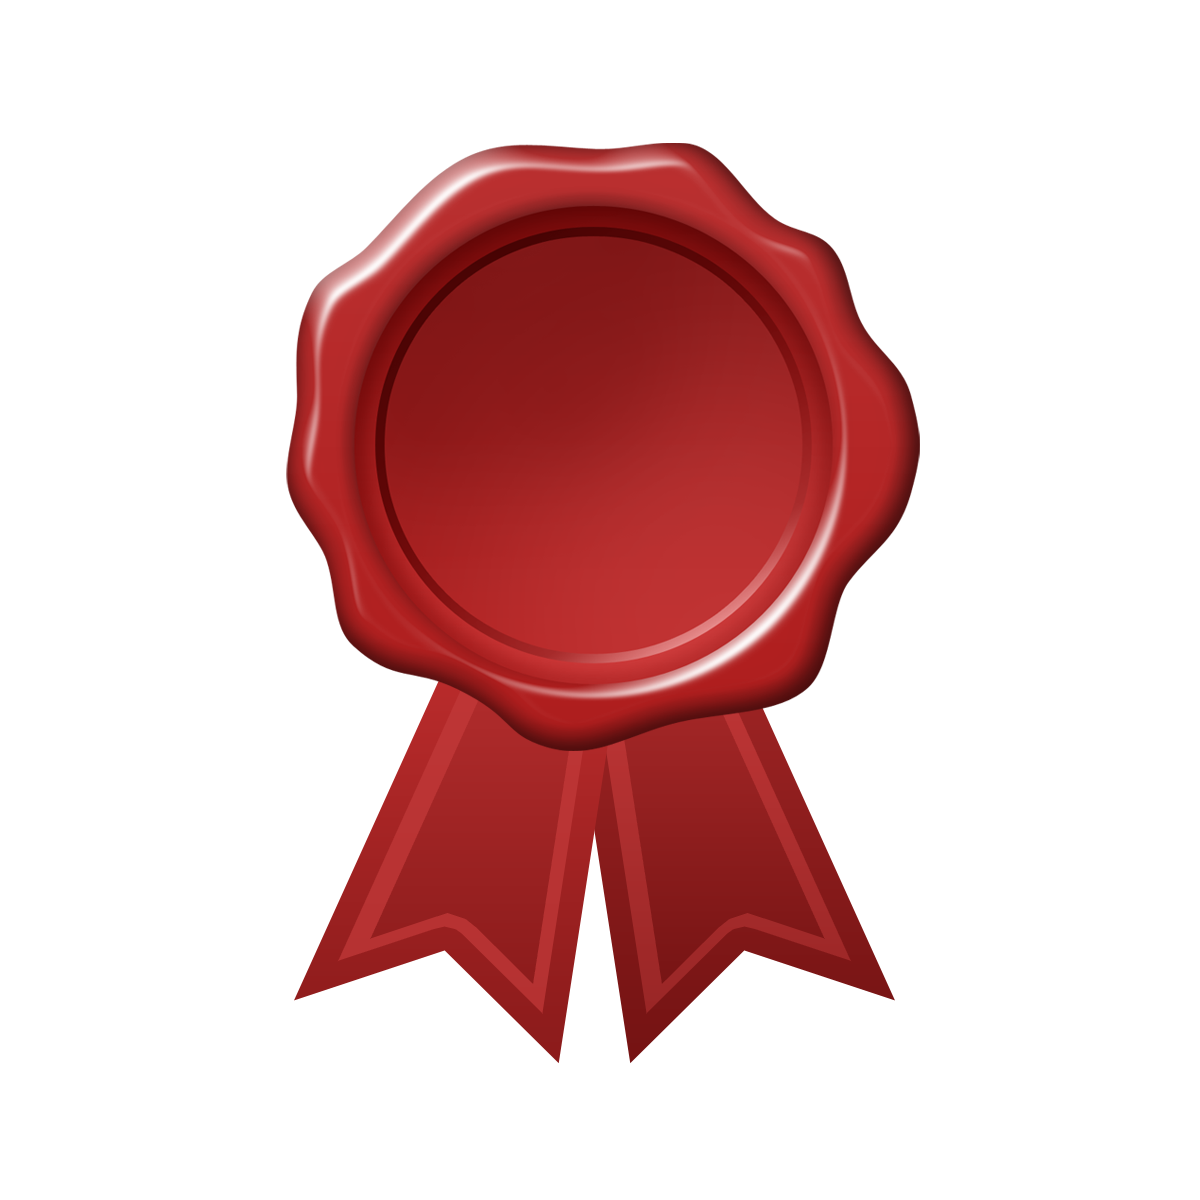 Stamp clipart certification. Sealing wax seal certificate